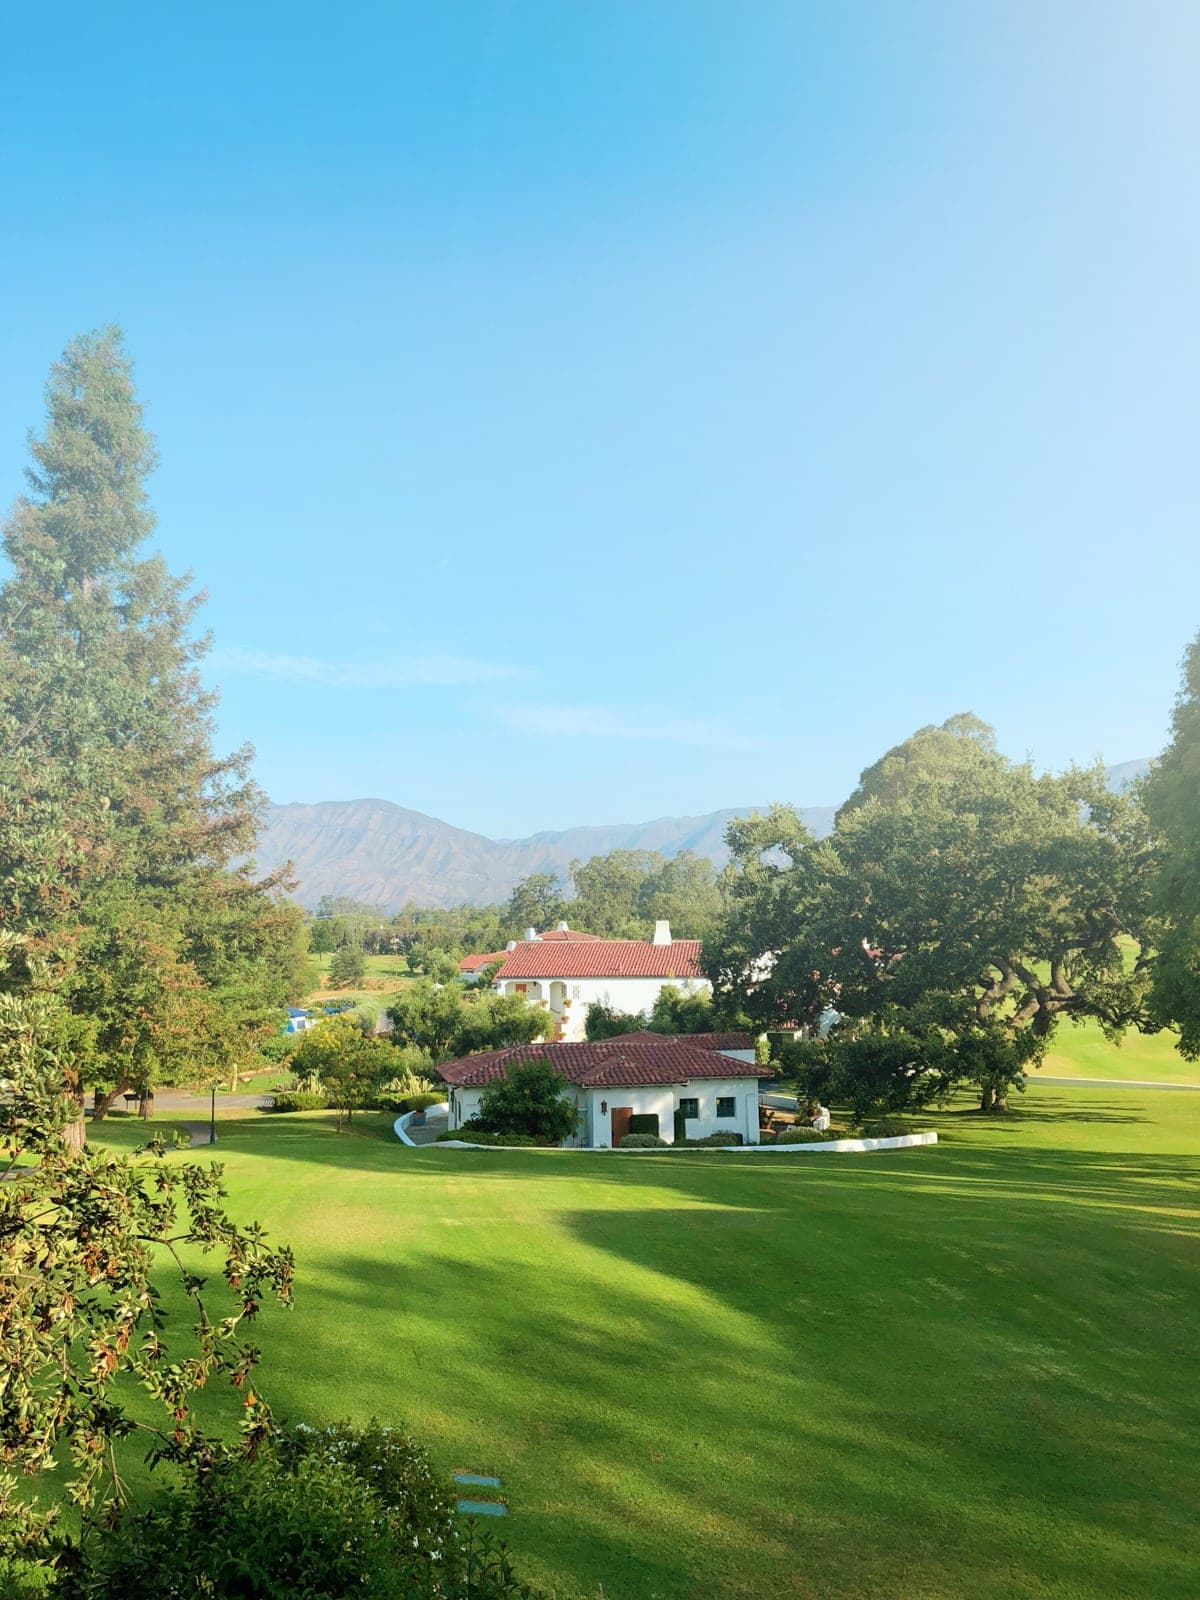 Things to Do in Ojai, California